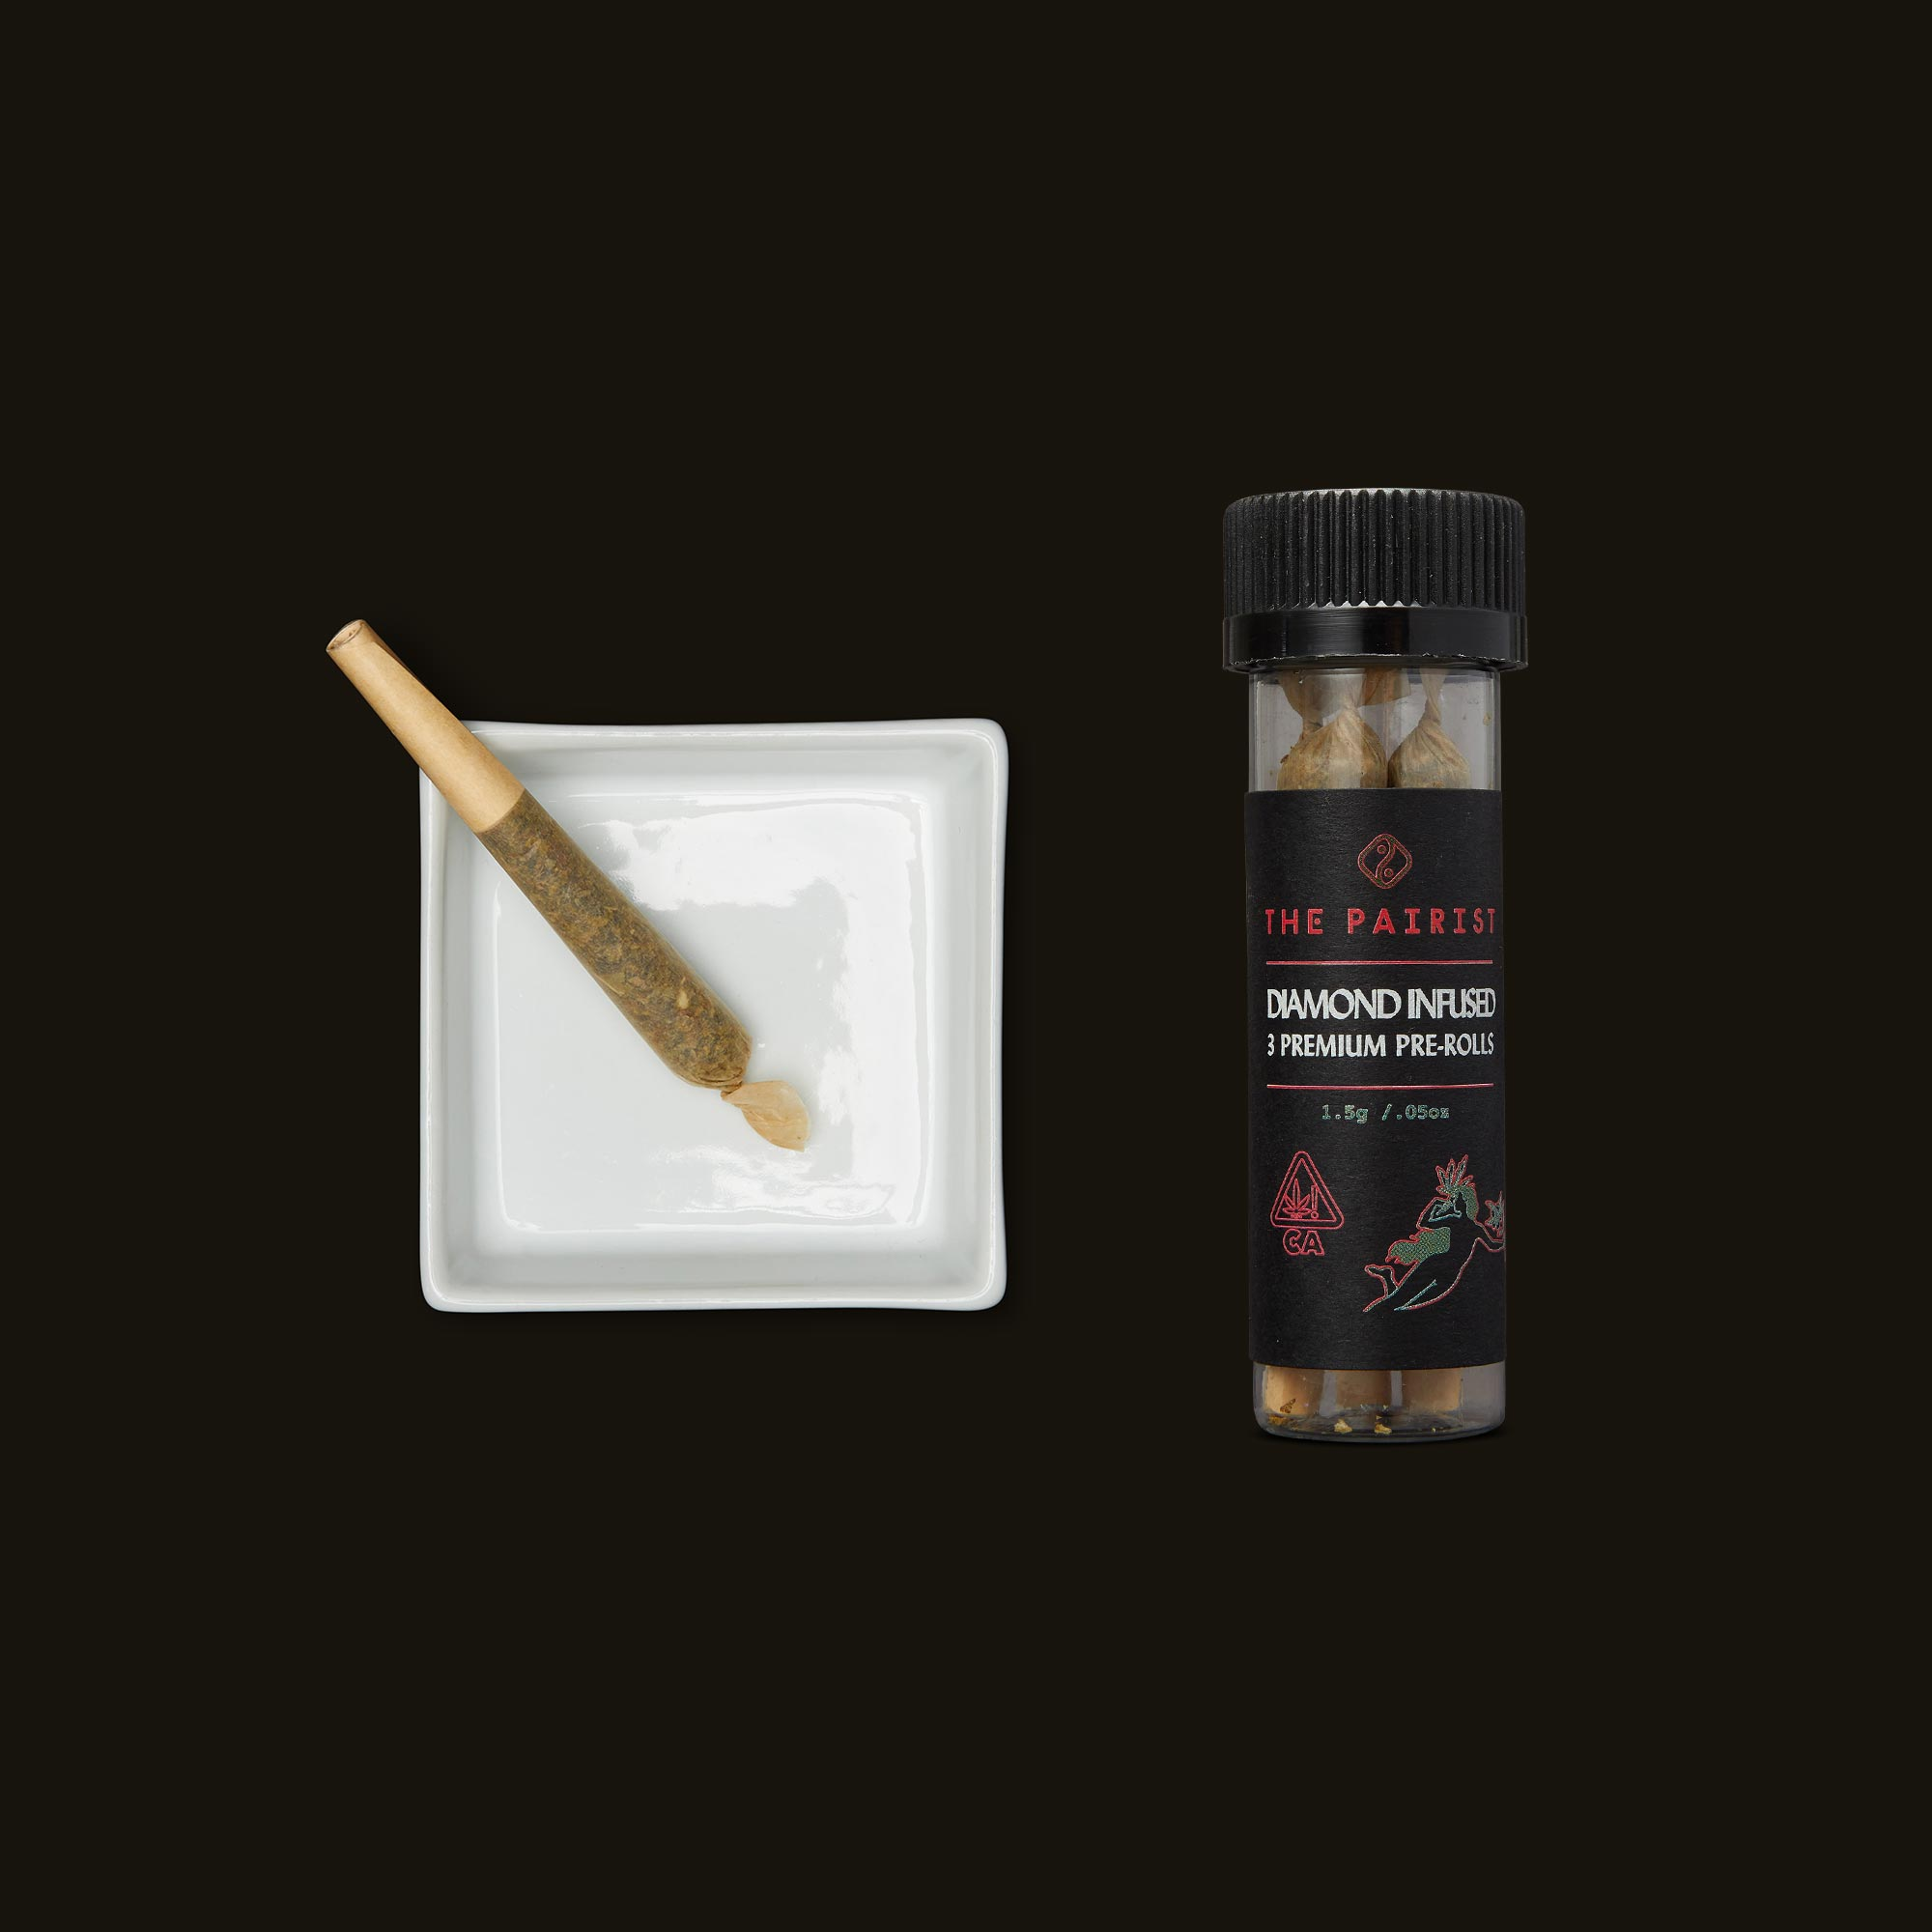 Triangle Mintz Diamond Infused Pre-Rolls by The Pairist